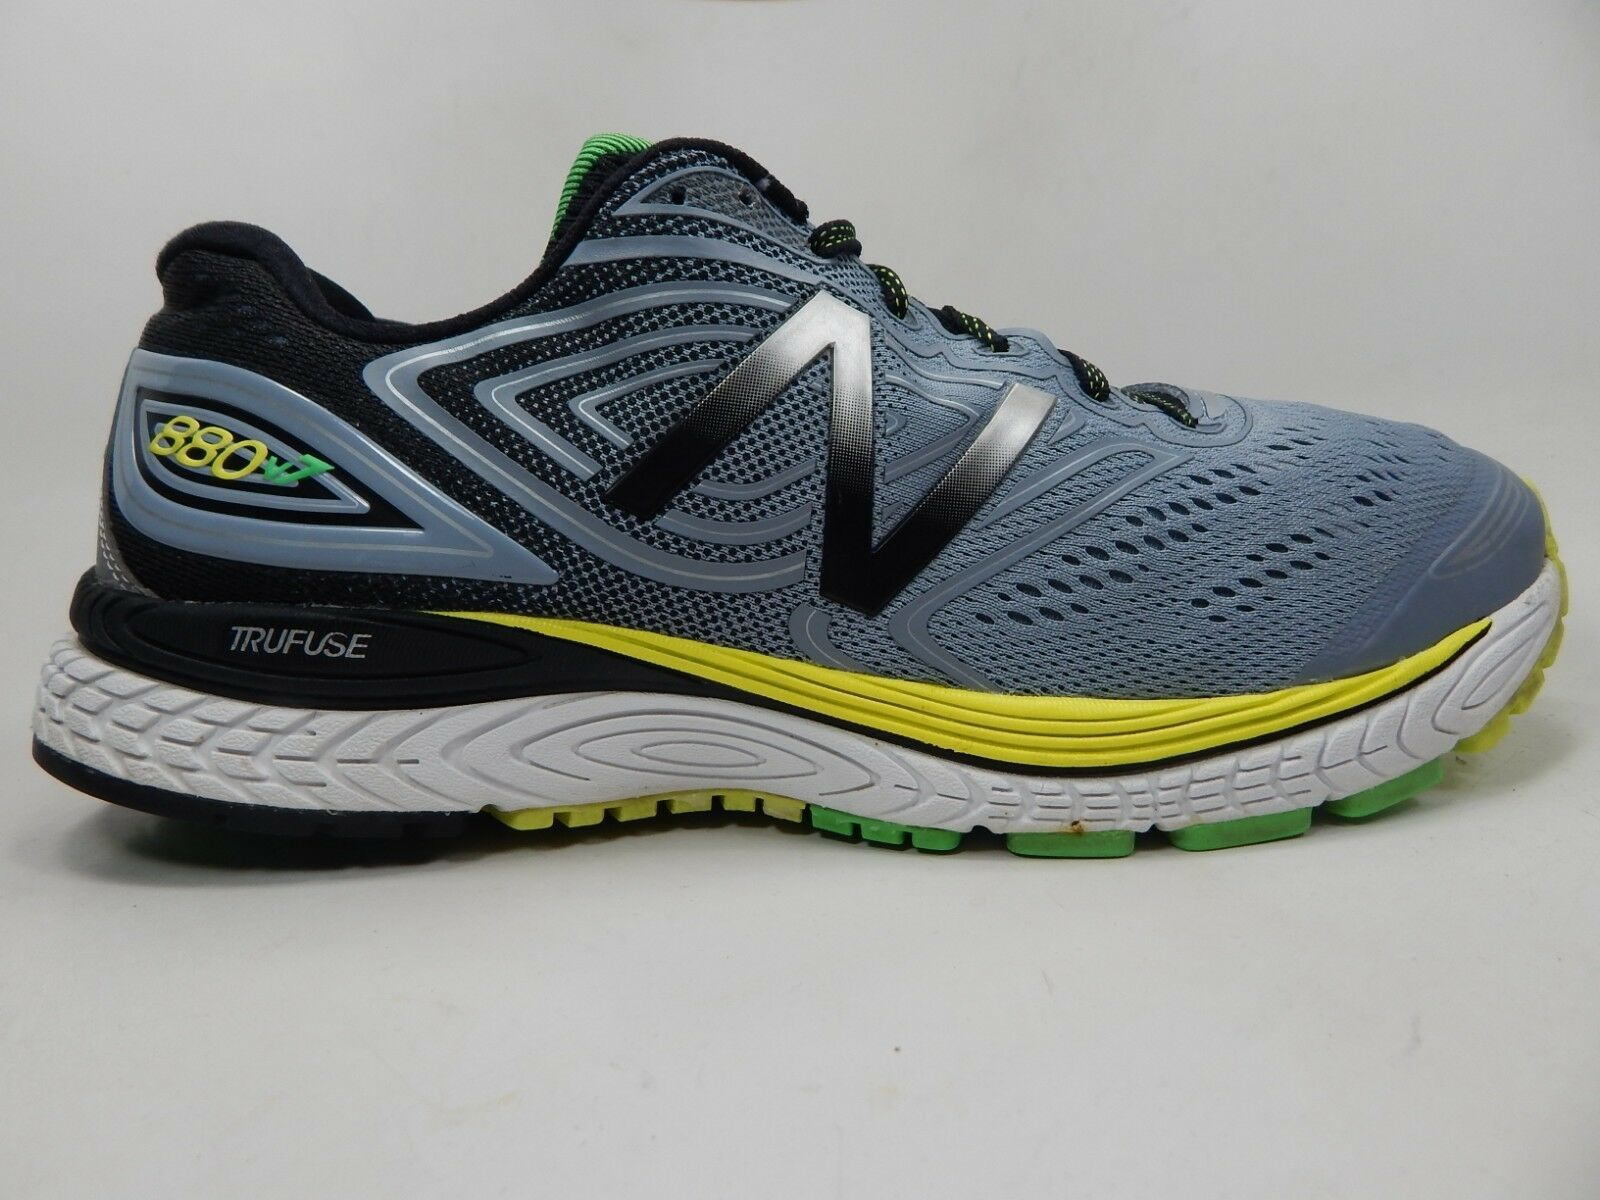 New Balance 880 v7 Size US 13 M (D) EU 47.5 Men's Running Shoes Gray M880GY7